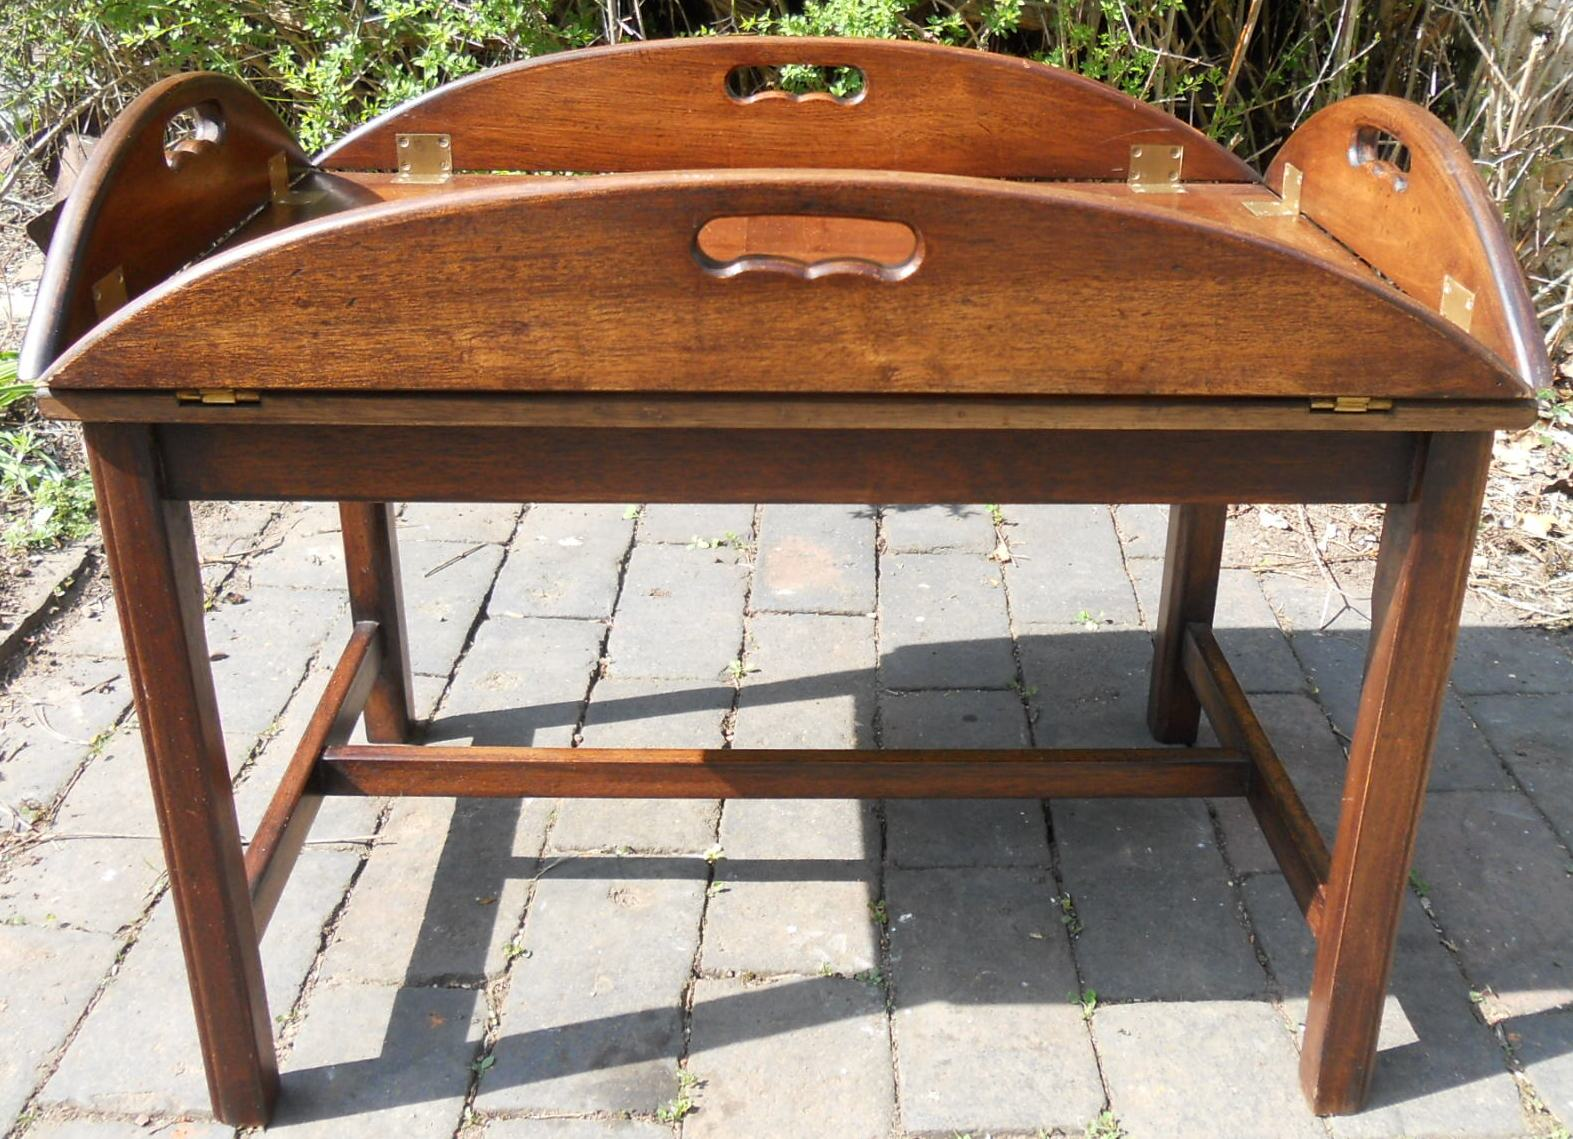 Folding Tray Top Mahogany Coffee Table : folding tray top mahogany coffee table 4328 p from www.harrisonantiquefurniture.co.uk size 1573 x 1139 jpeg 337kB